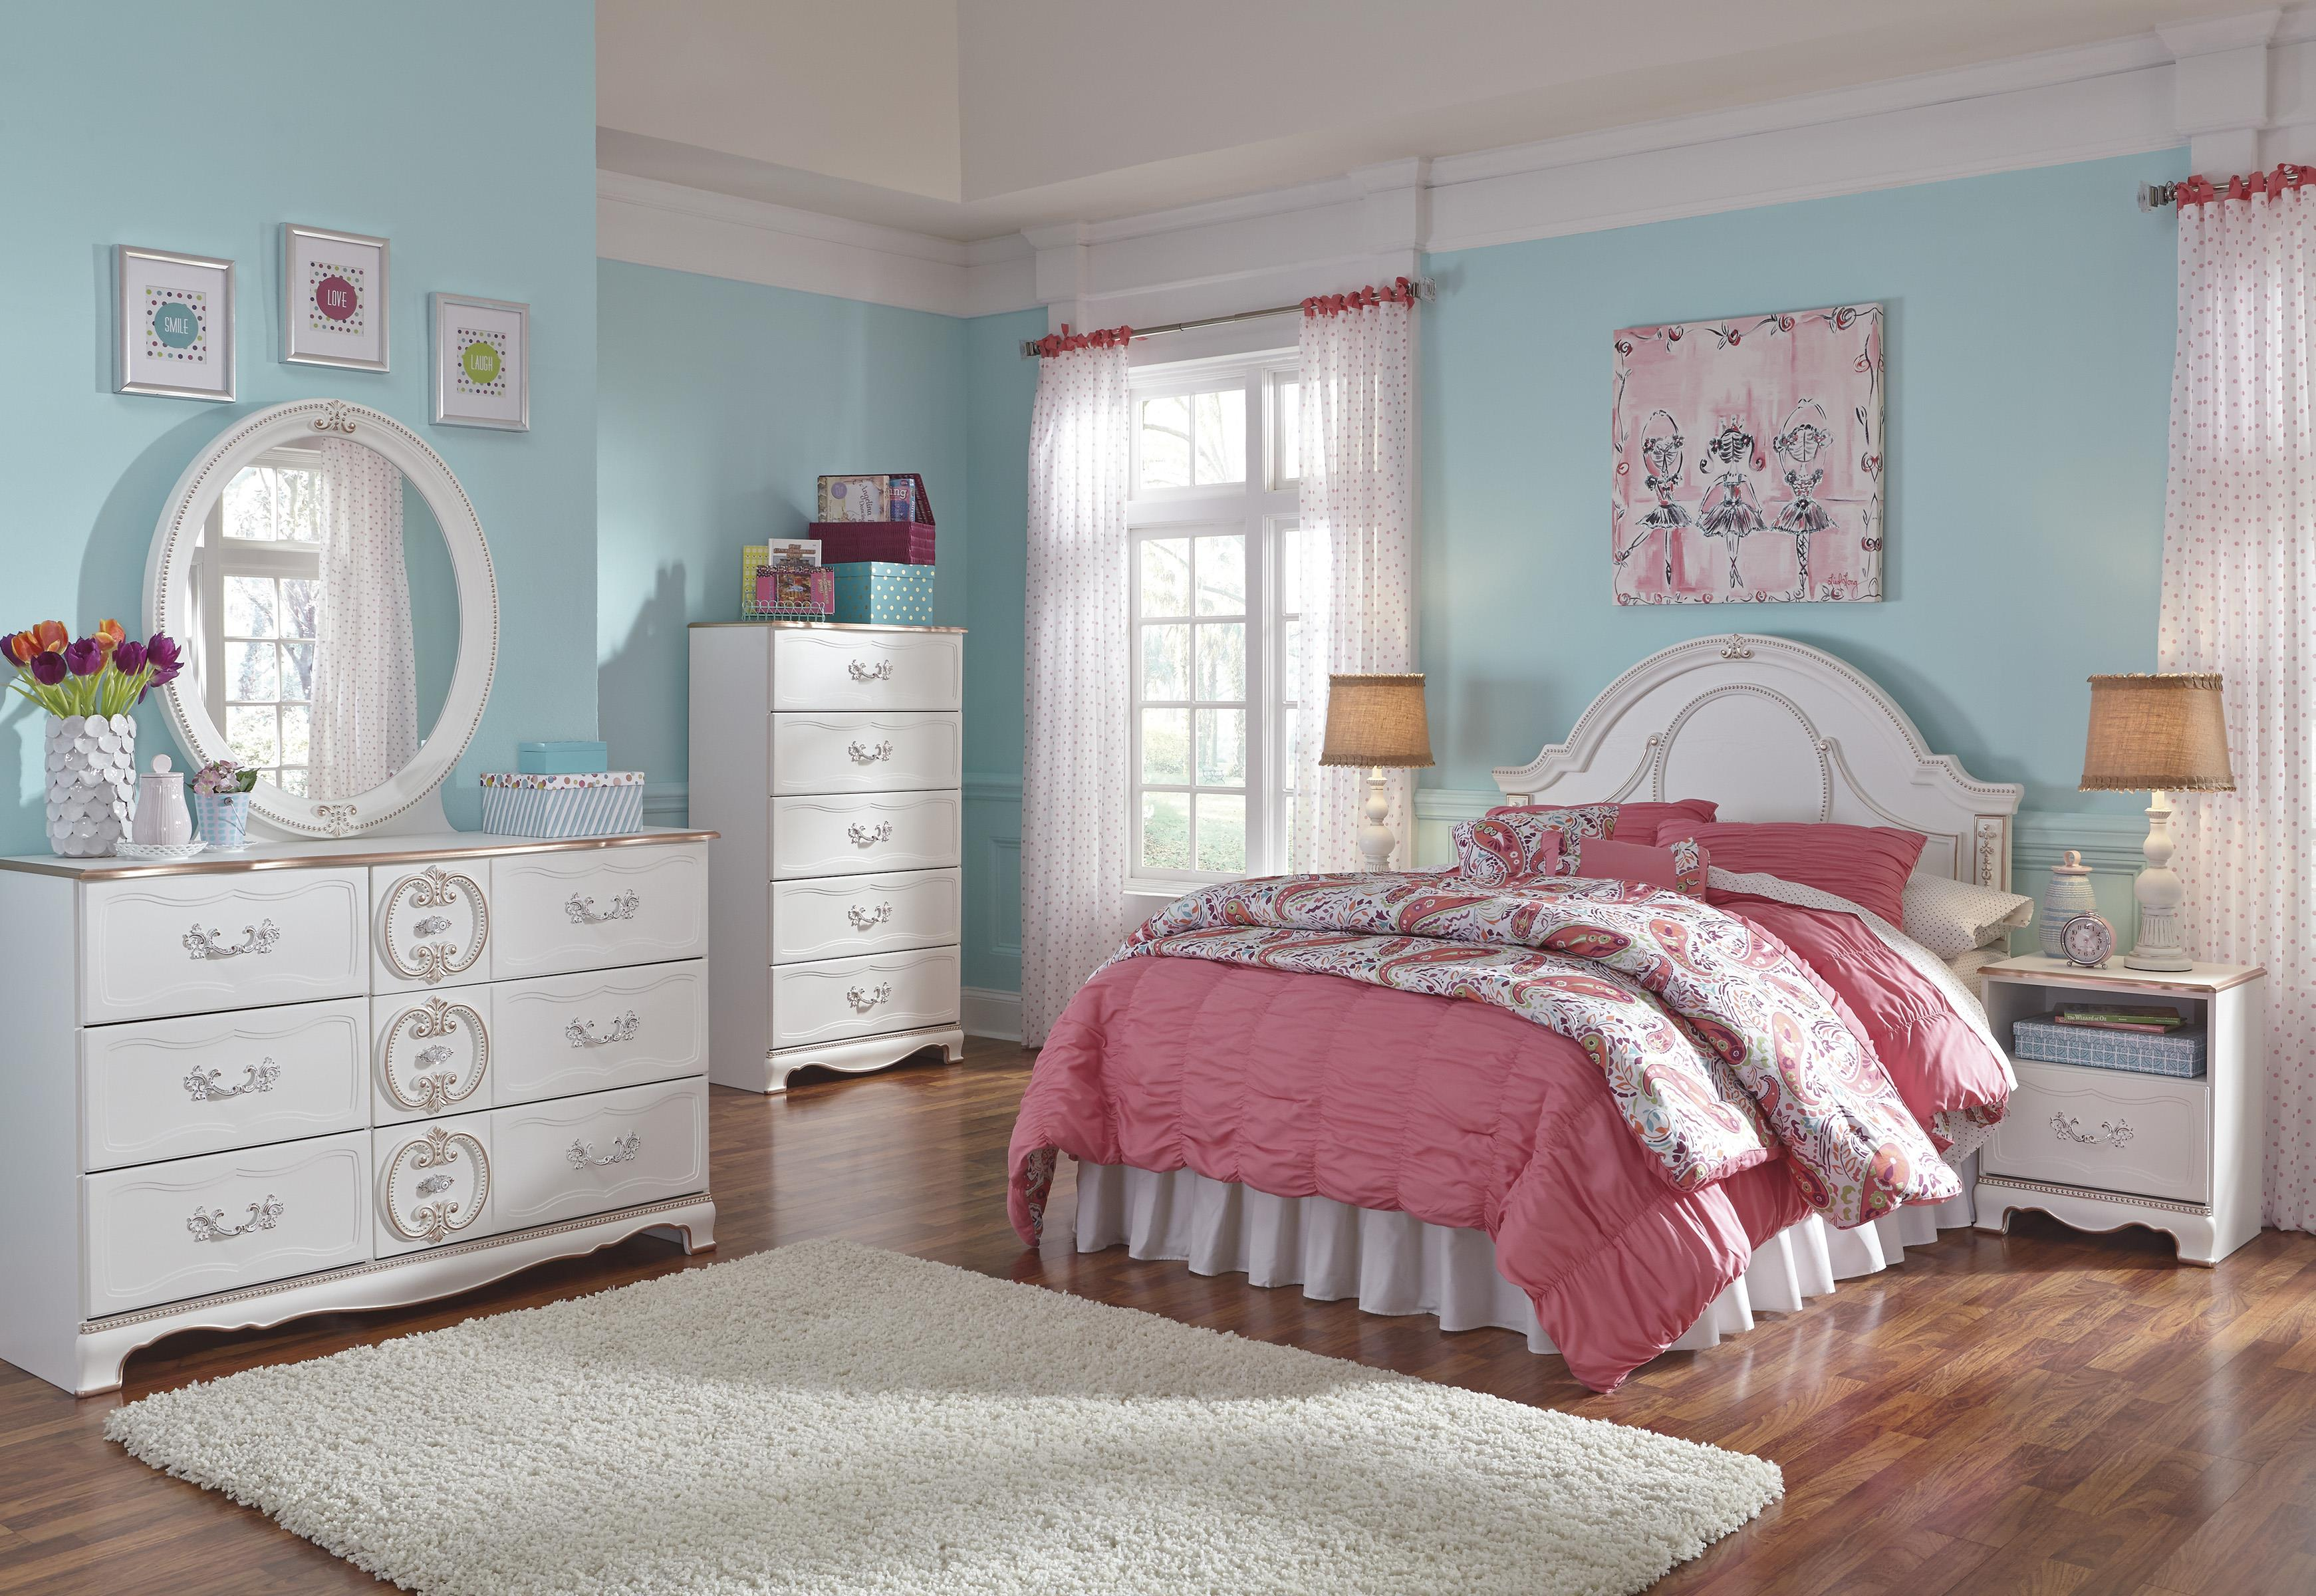 Signature Design by Ashley Korabella Full Bedroom Group - Item Number: B355 F Bedroom Group 2